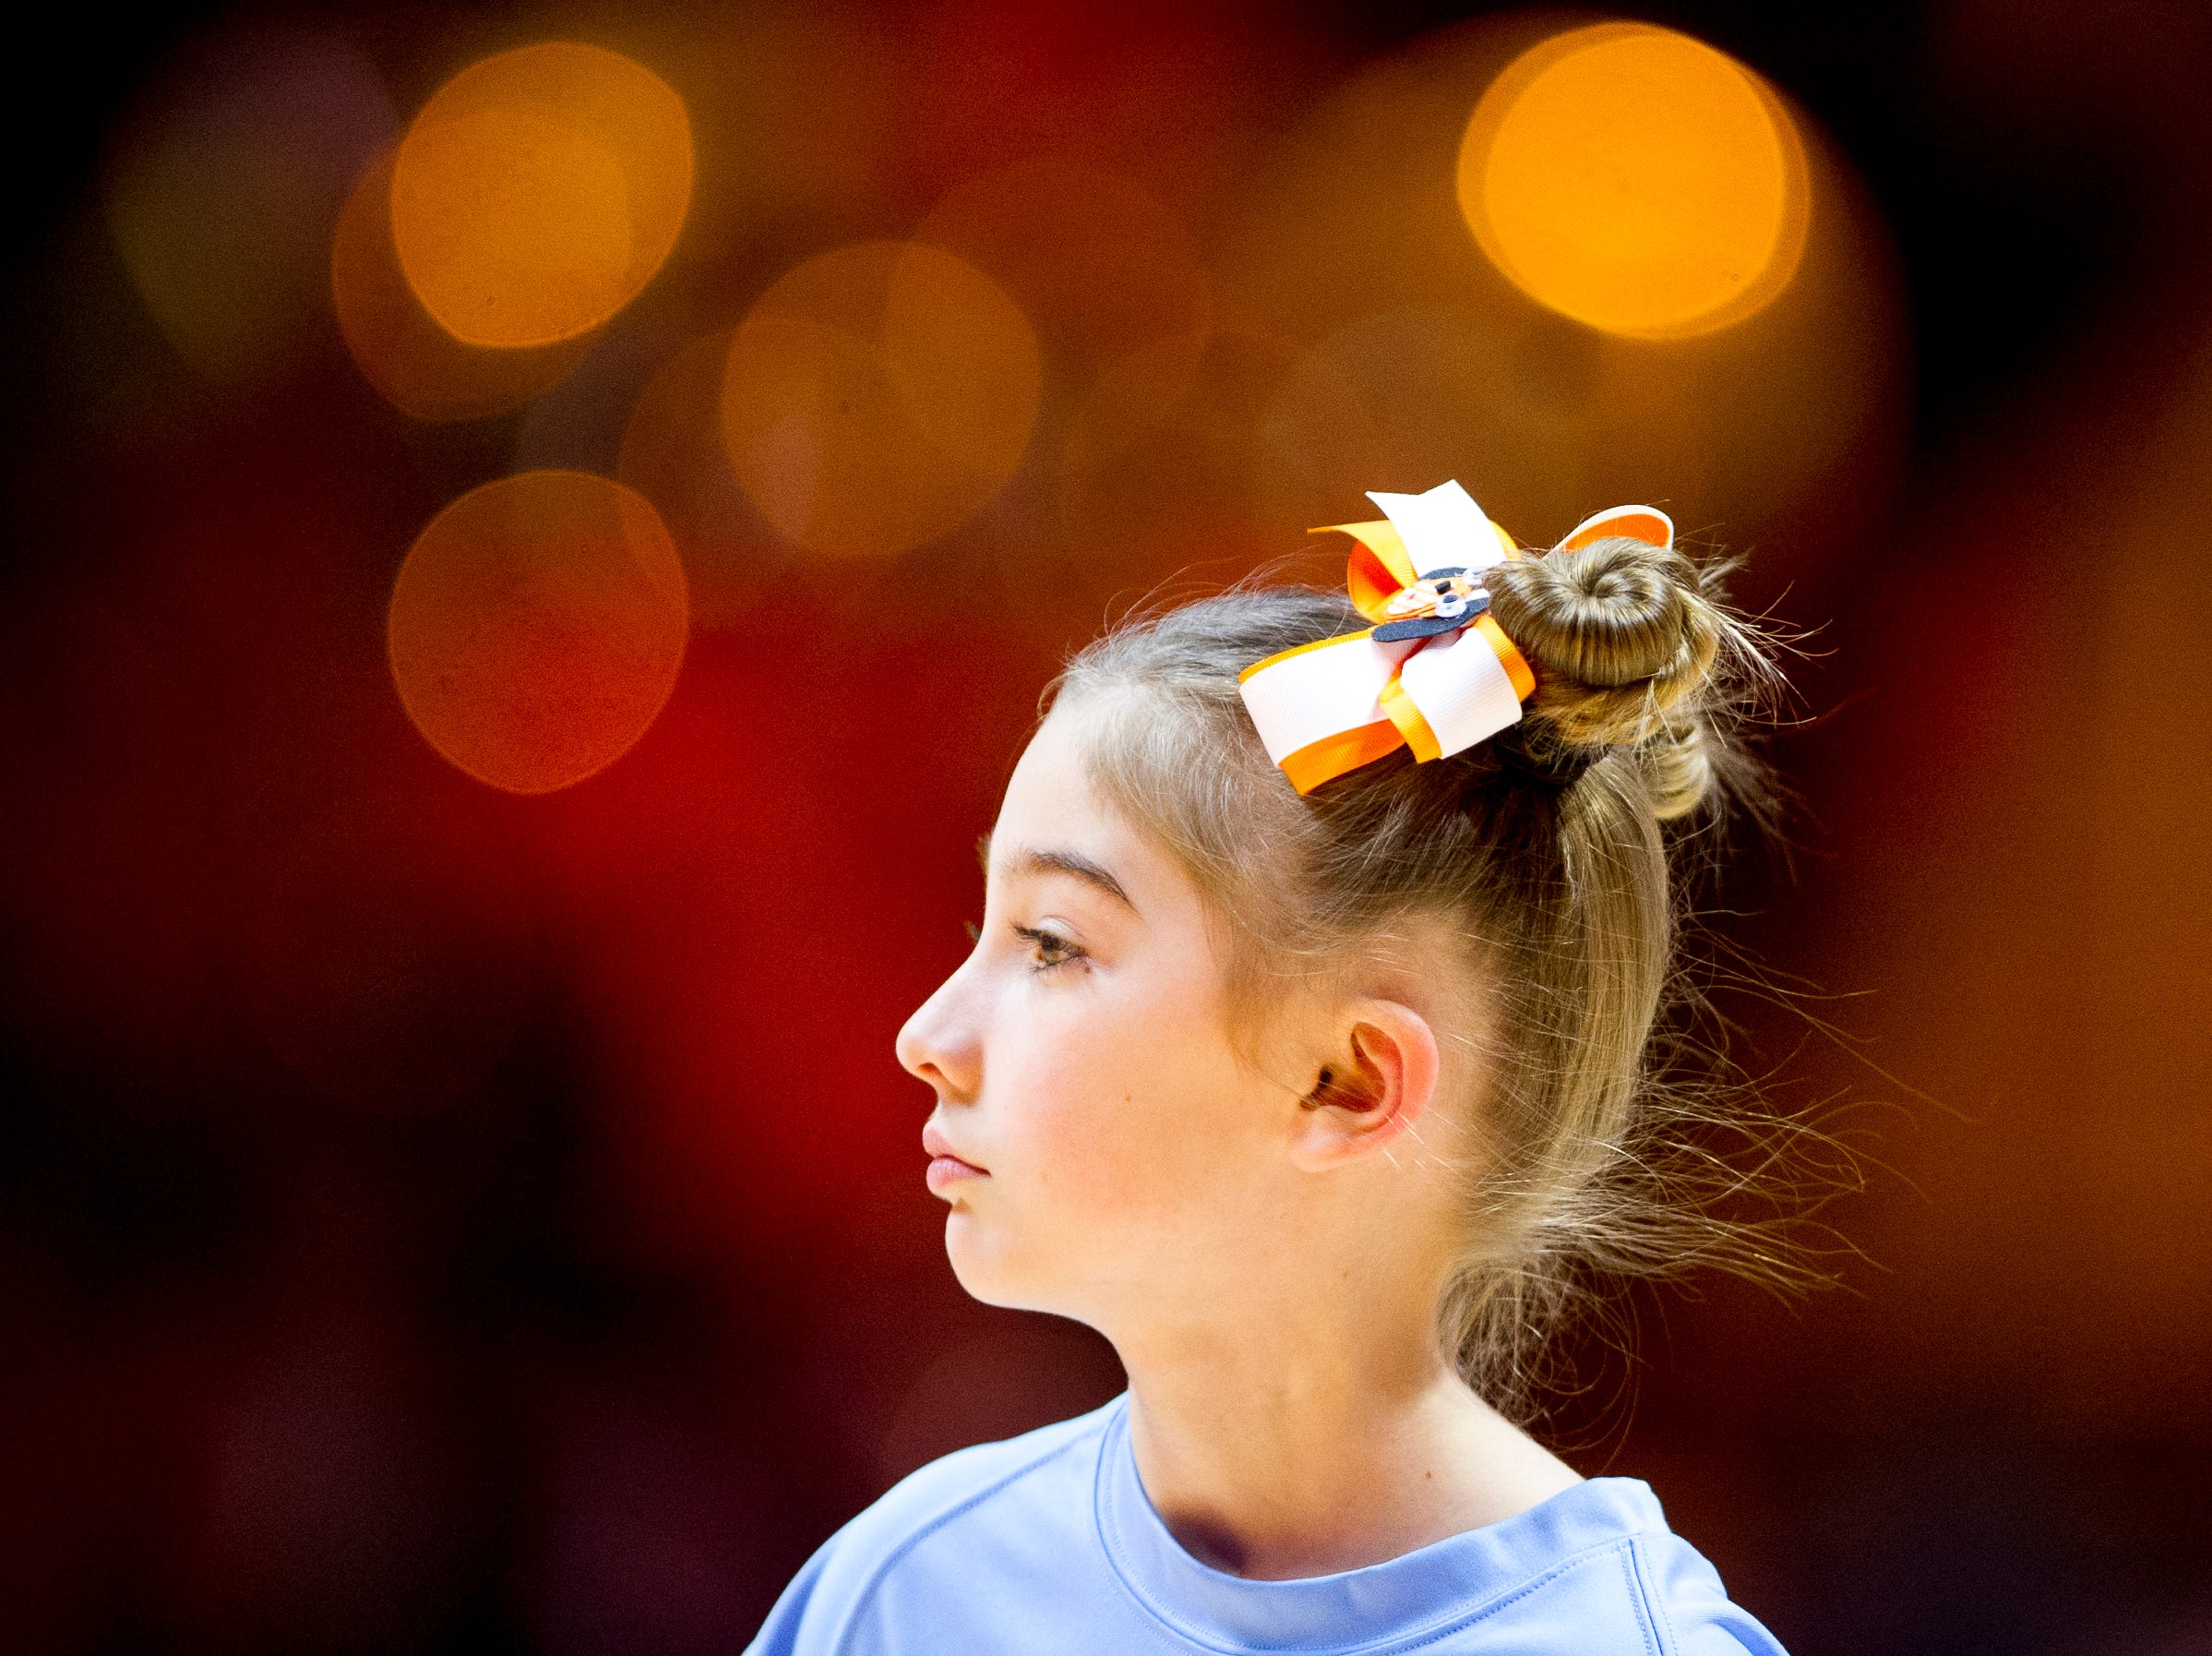 A young team member cleans the floors during a game between Tennessee and Arkansas at Thompson-Boling Arena in , Tennessee on Monday, January 21, 2019.